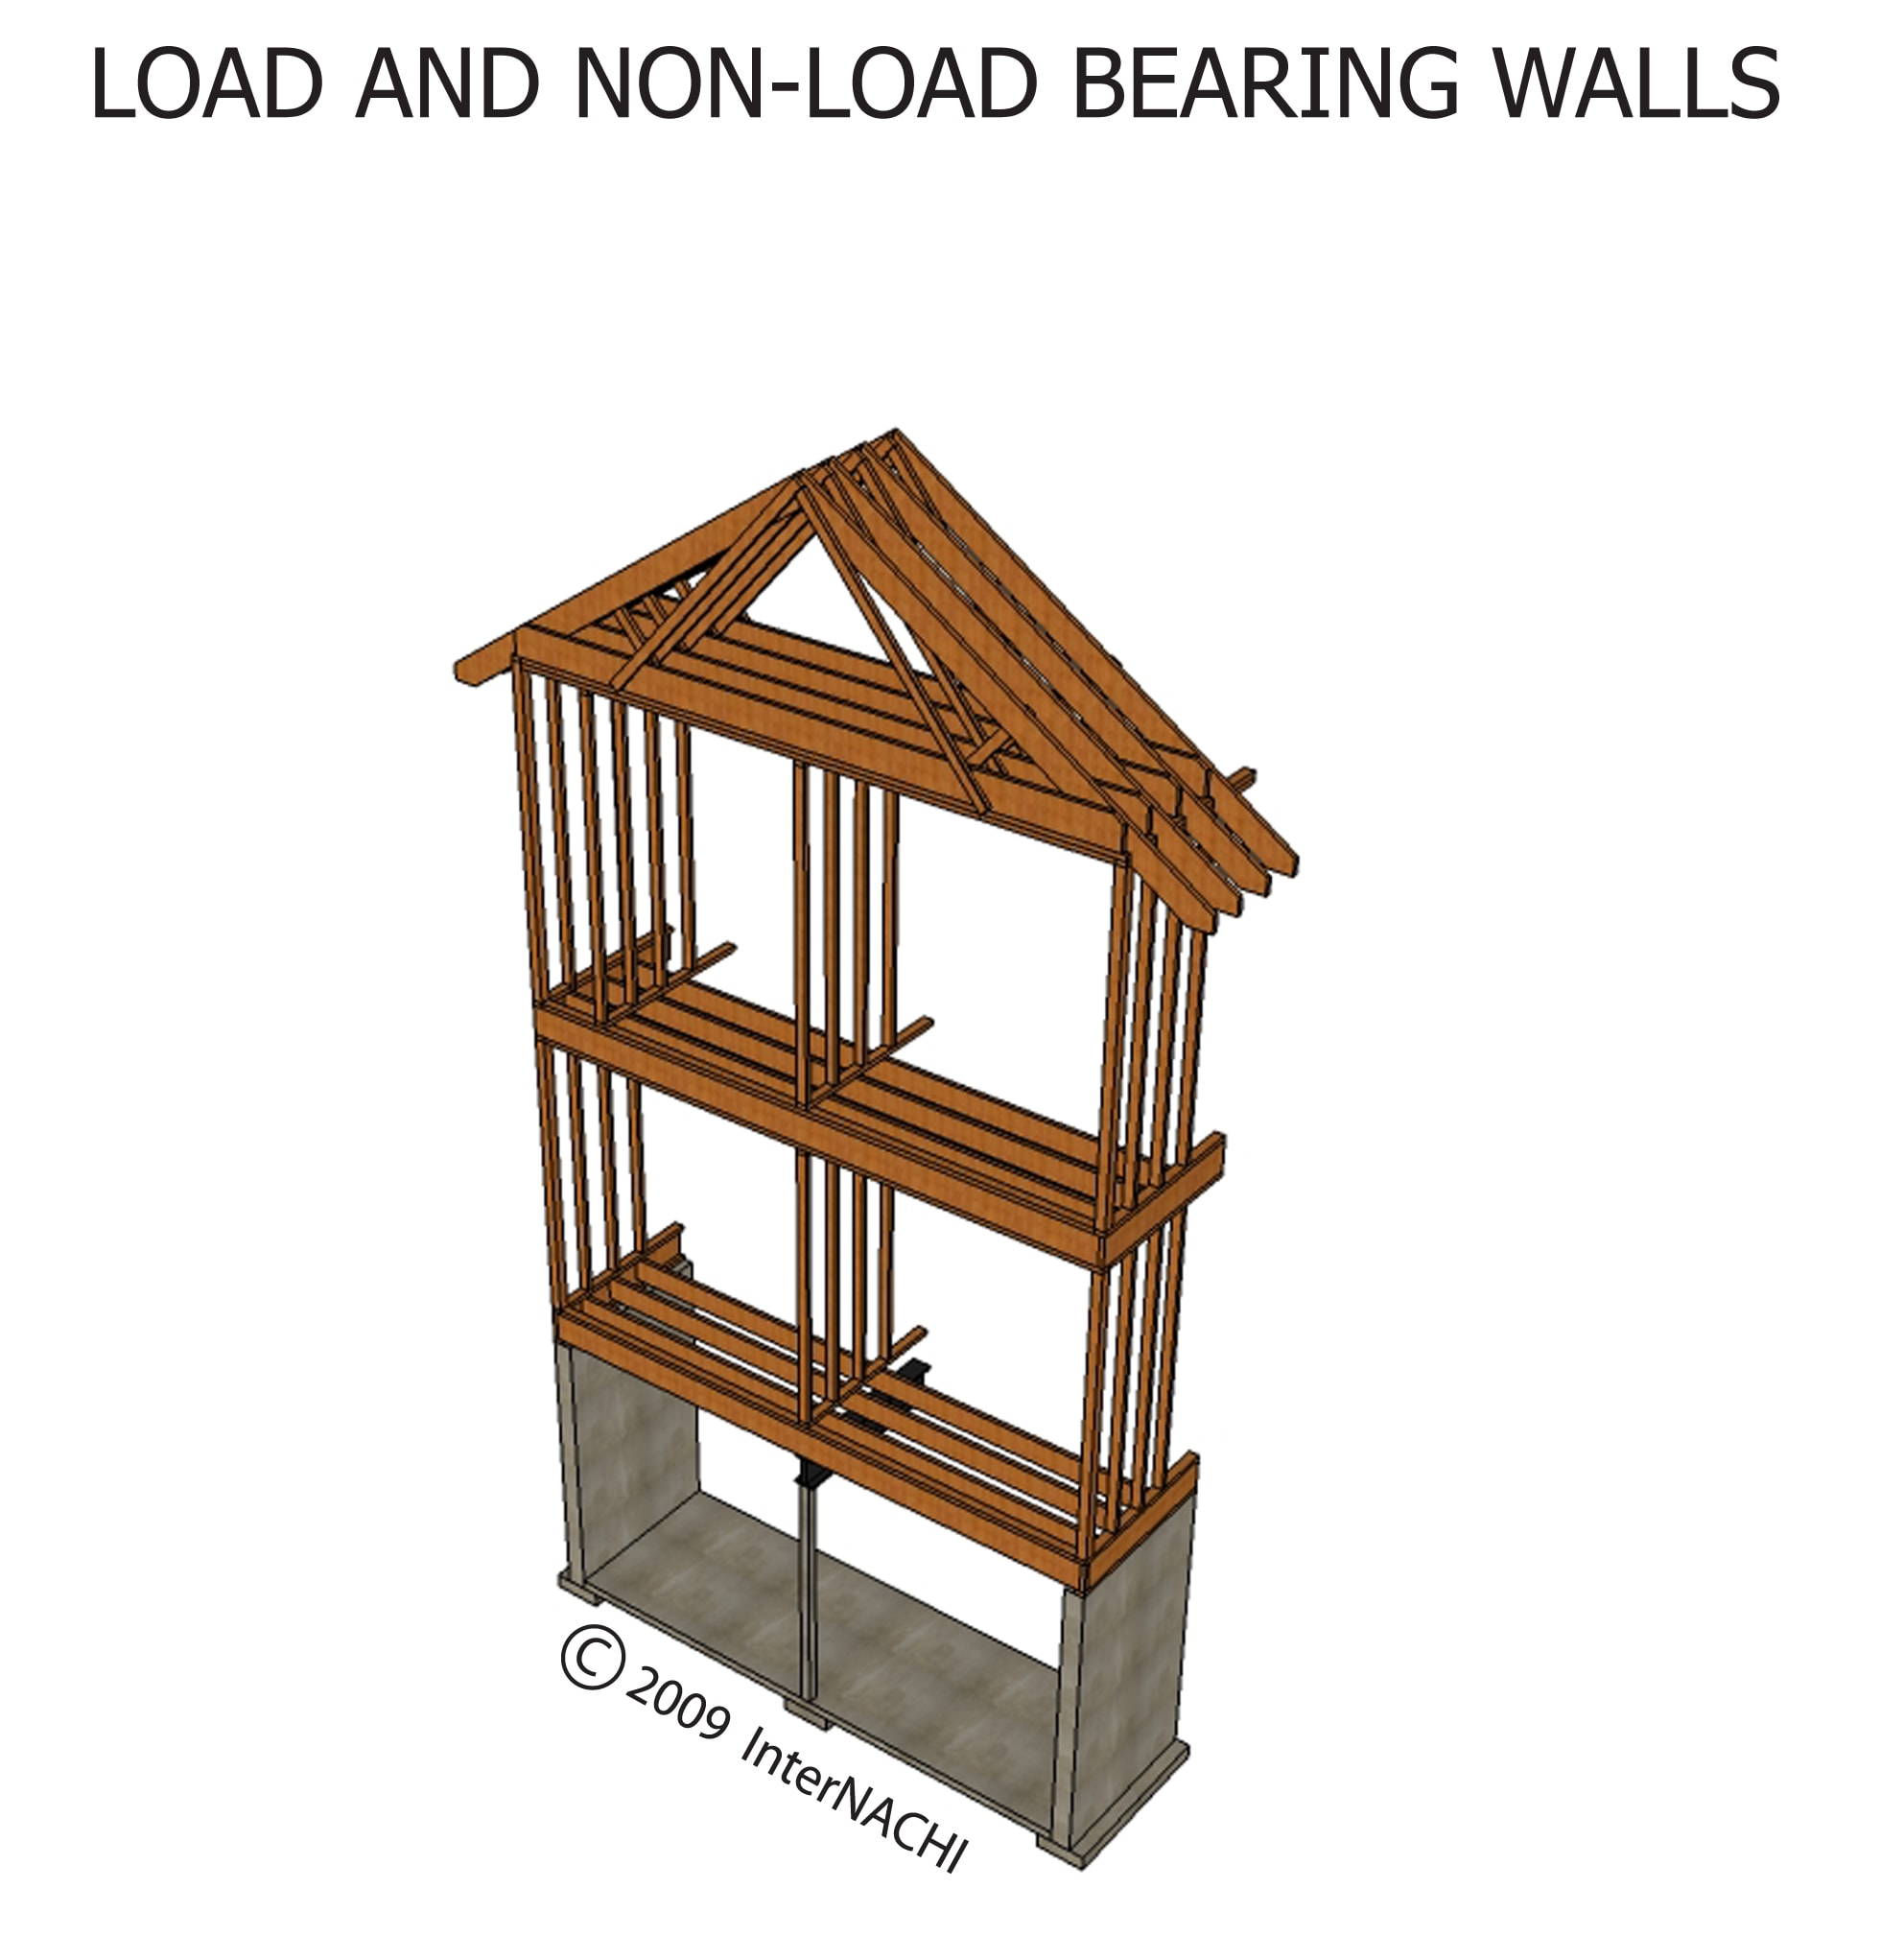 Load and non-load bearing walls.